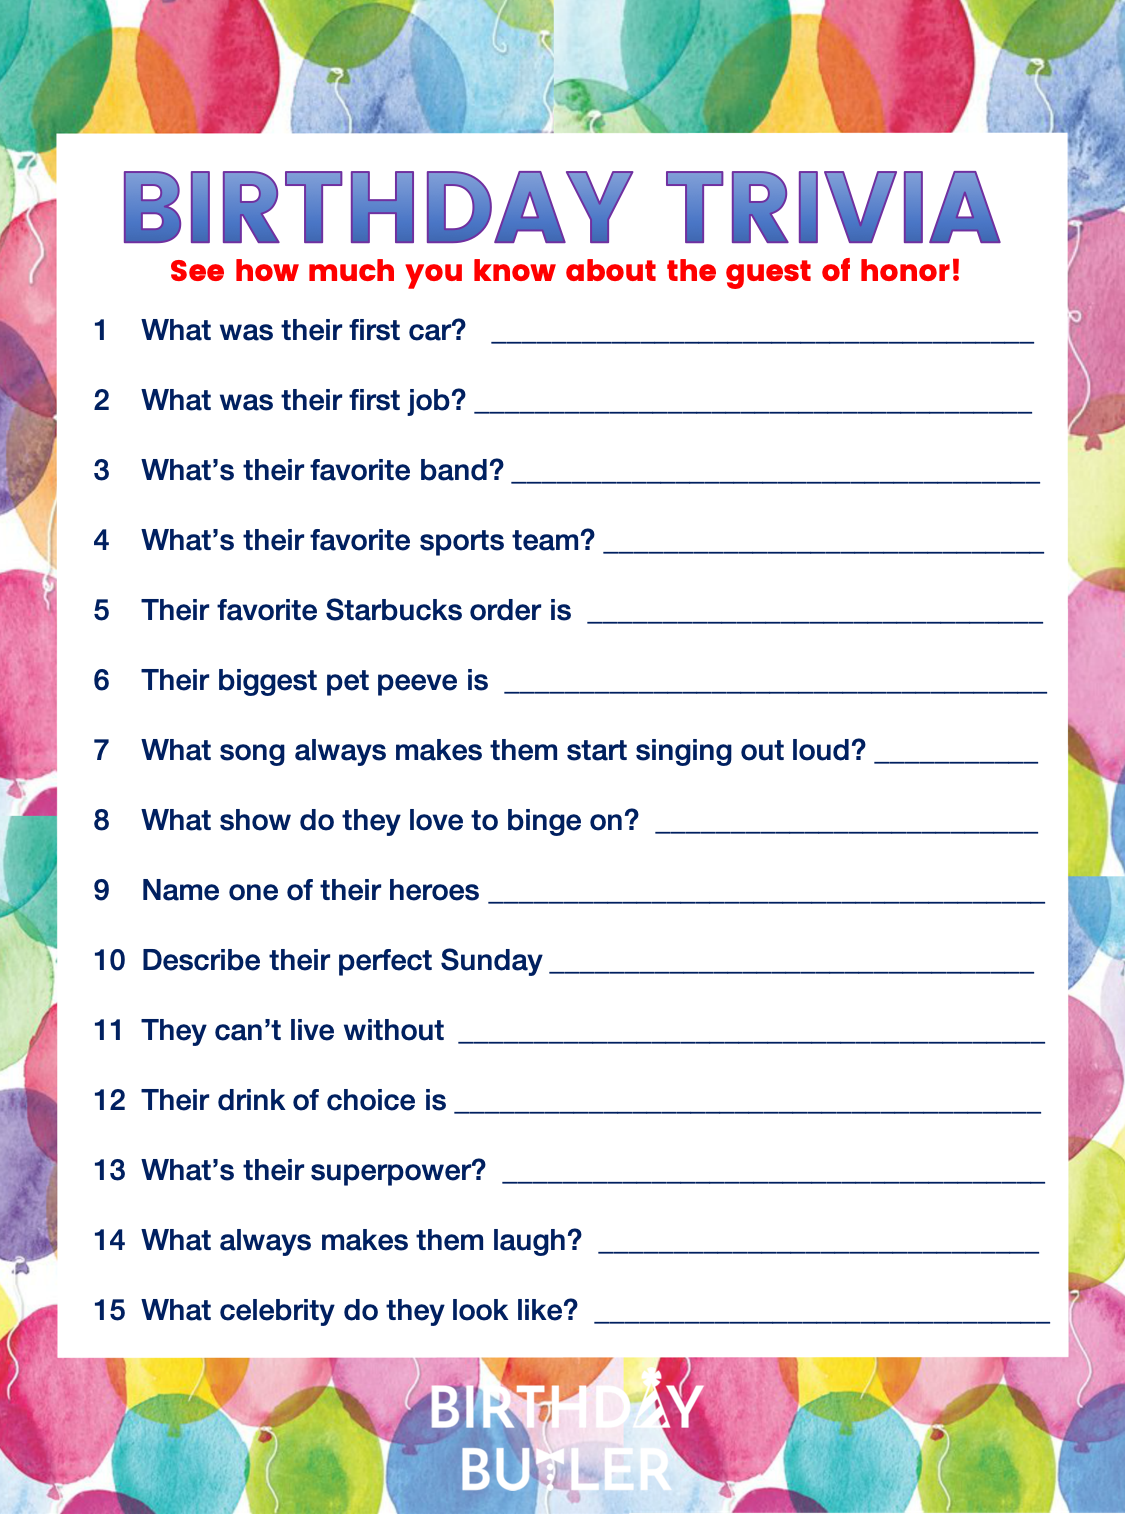 ADD OOMPH! TO YOUR PARTY WITH BIRTHDAY TRIVIA – Birthday Butler